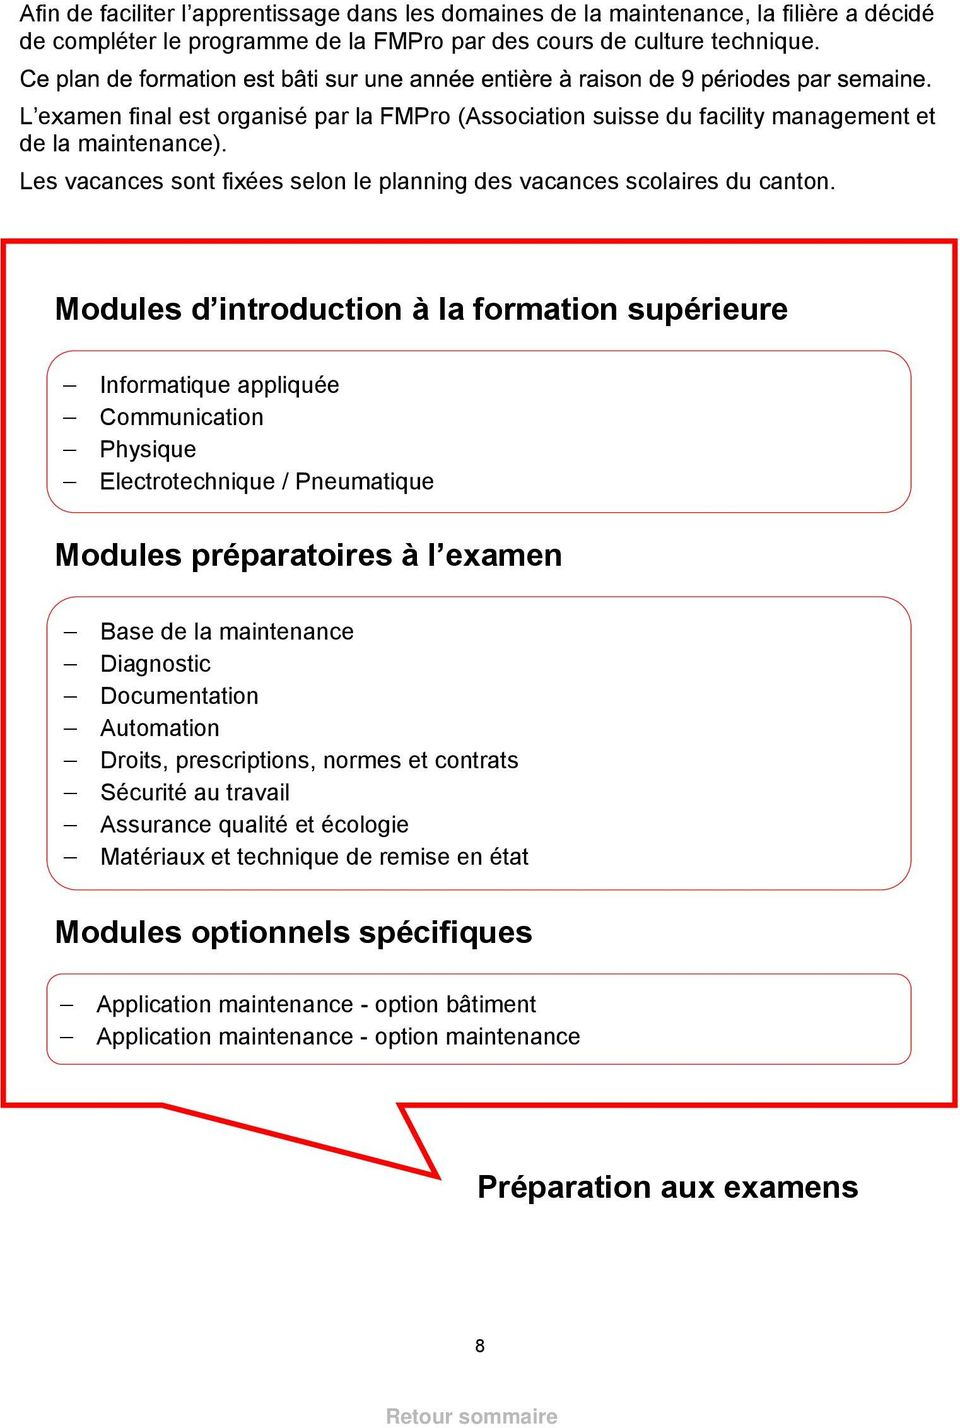 Modules d introduction à la formation supérieure Informatique appliquée Communication Physique Electrotechnique / Pneumatique Modules préparatoires à l examen Base de la maintenance Diagnostic